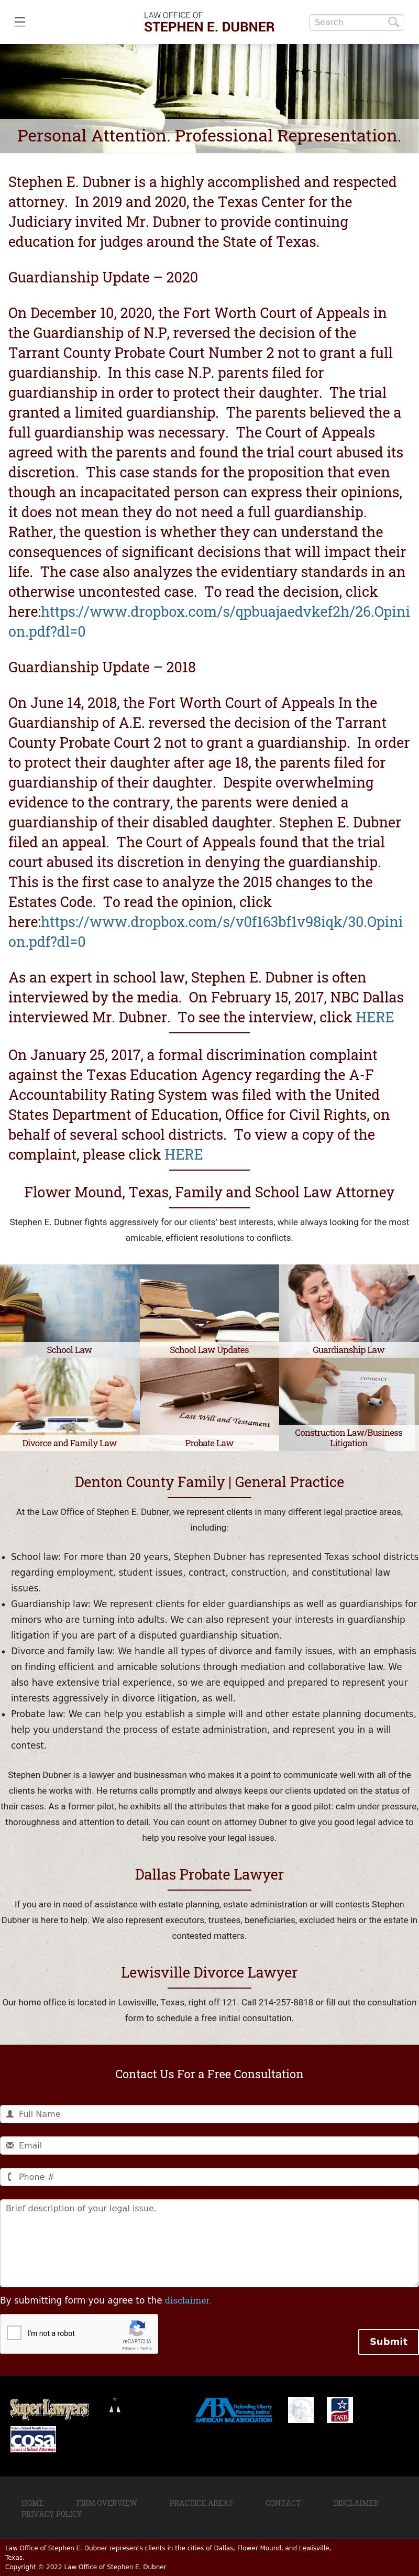 Law Office of Stephen E. Dubner - Flower Mound TX Lawyers